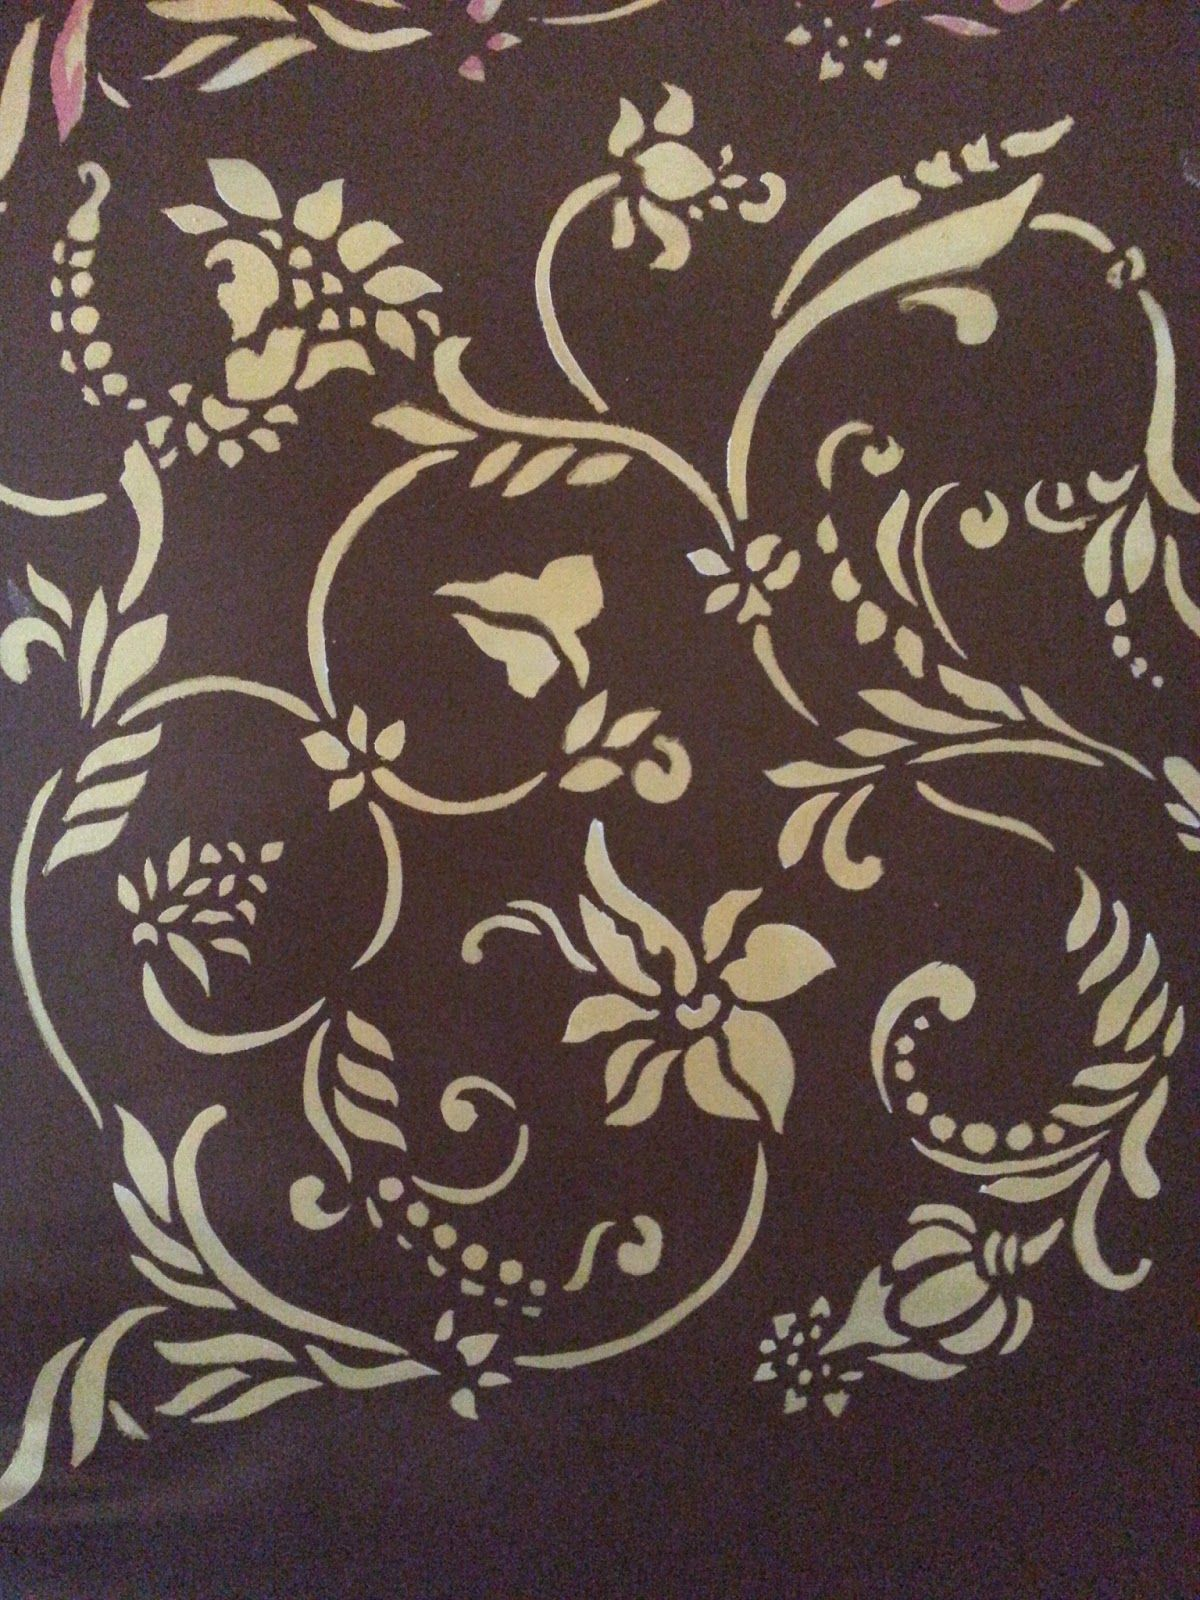 Wall painting flower stencils with charming gold and brown color wall painting flower stencils with charming gold and brown color design wall paint stencils wall stencil paint brush amipublicfo Image collections